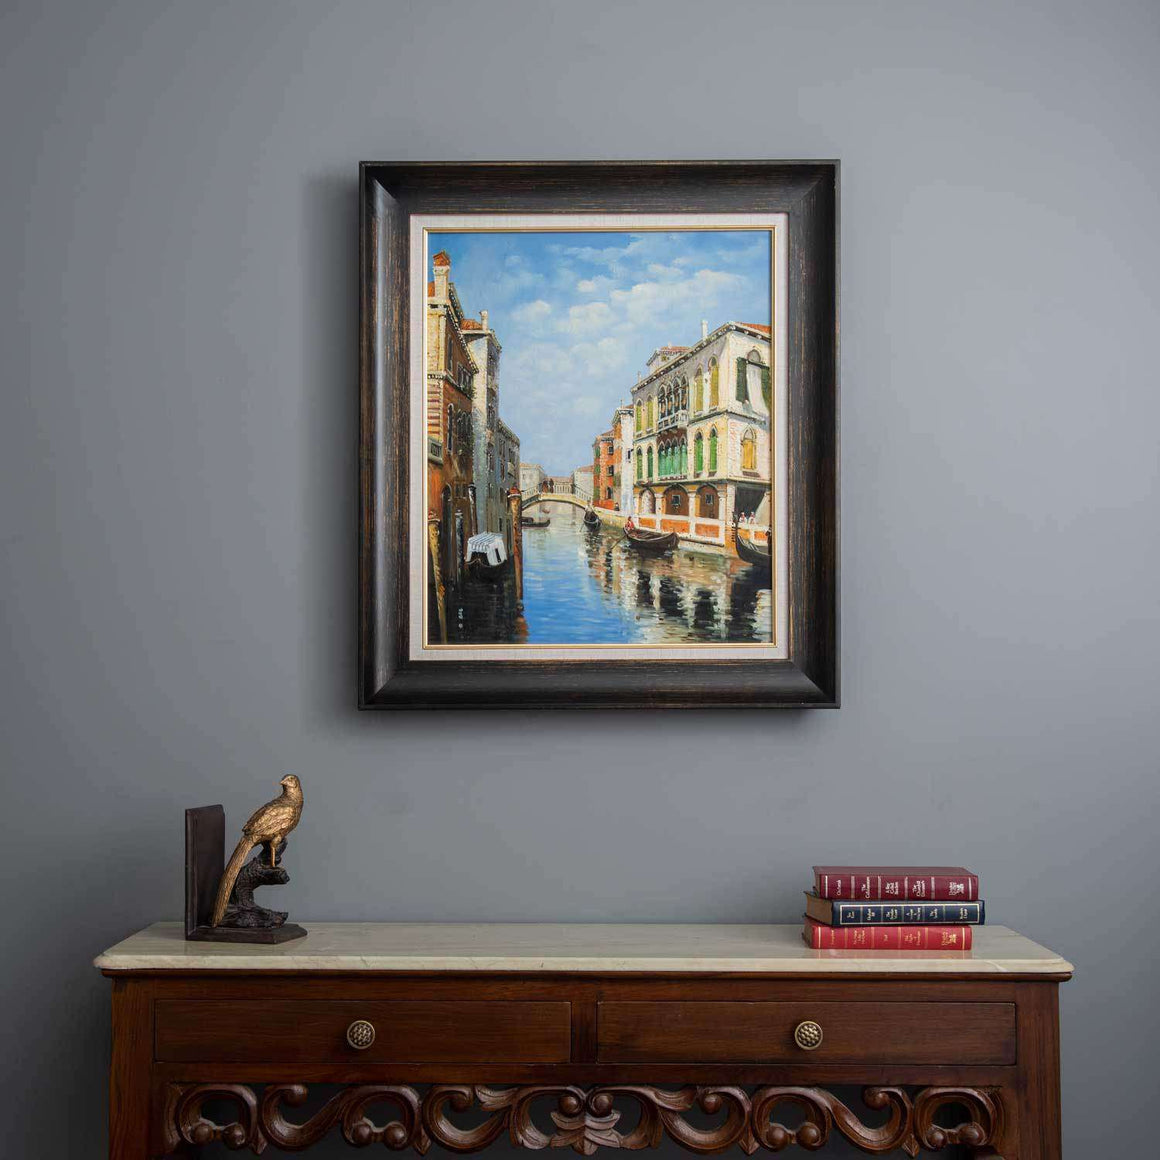 "'The Gondola Ride - Venice-II' Handmade Oil Painting 26"" * 30"""